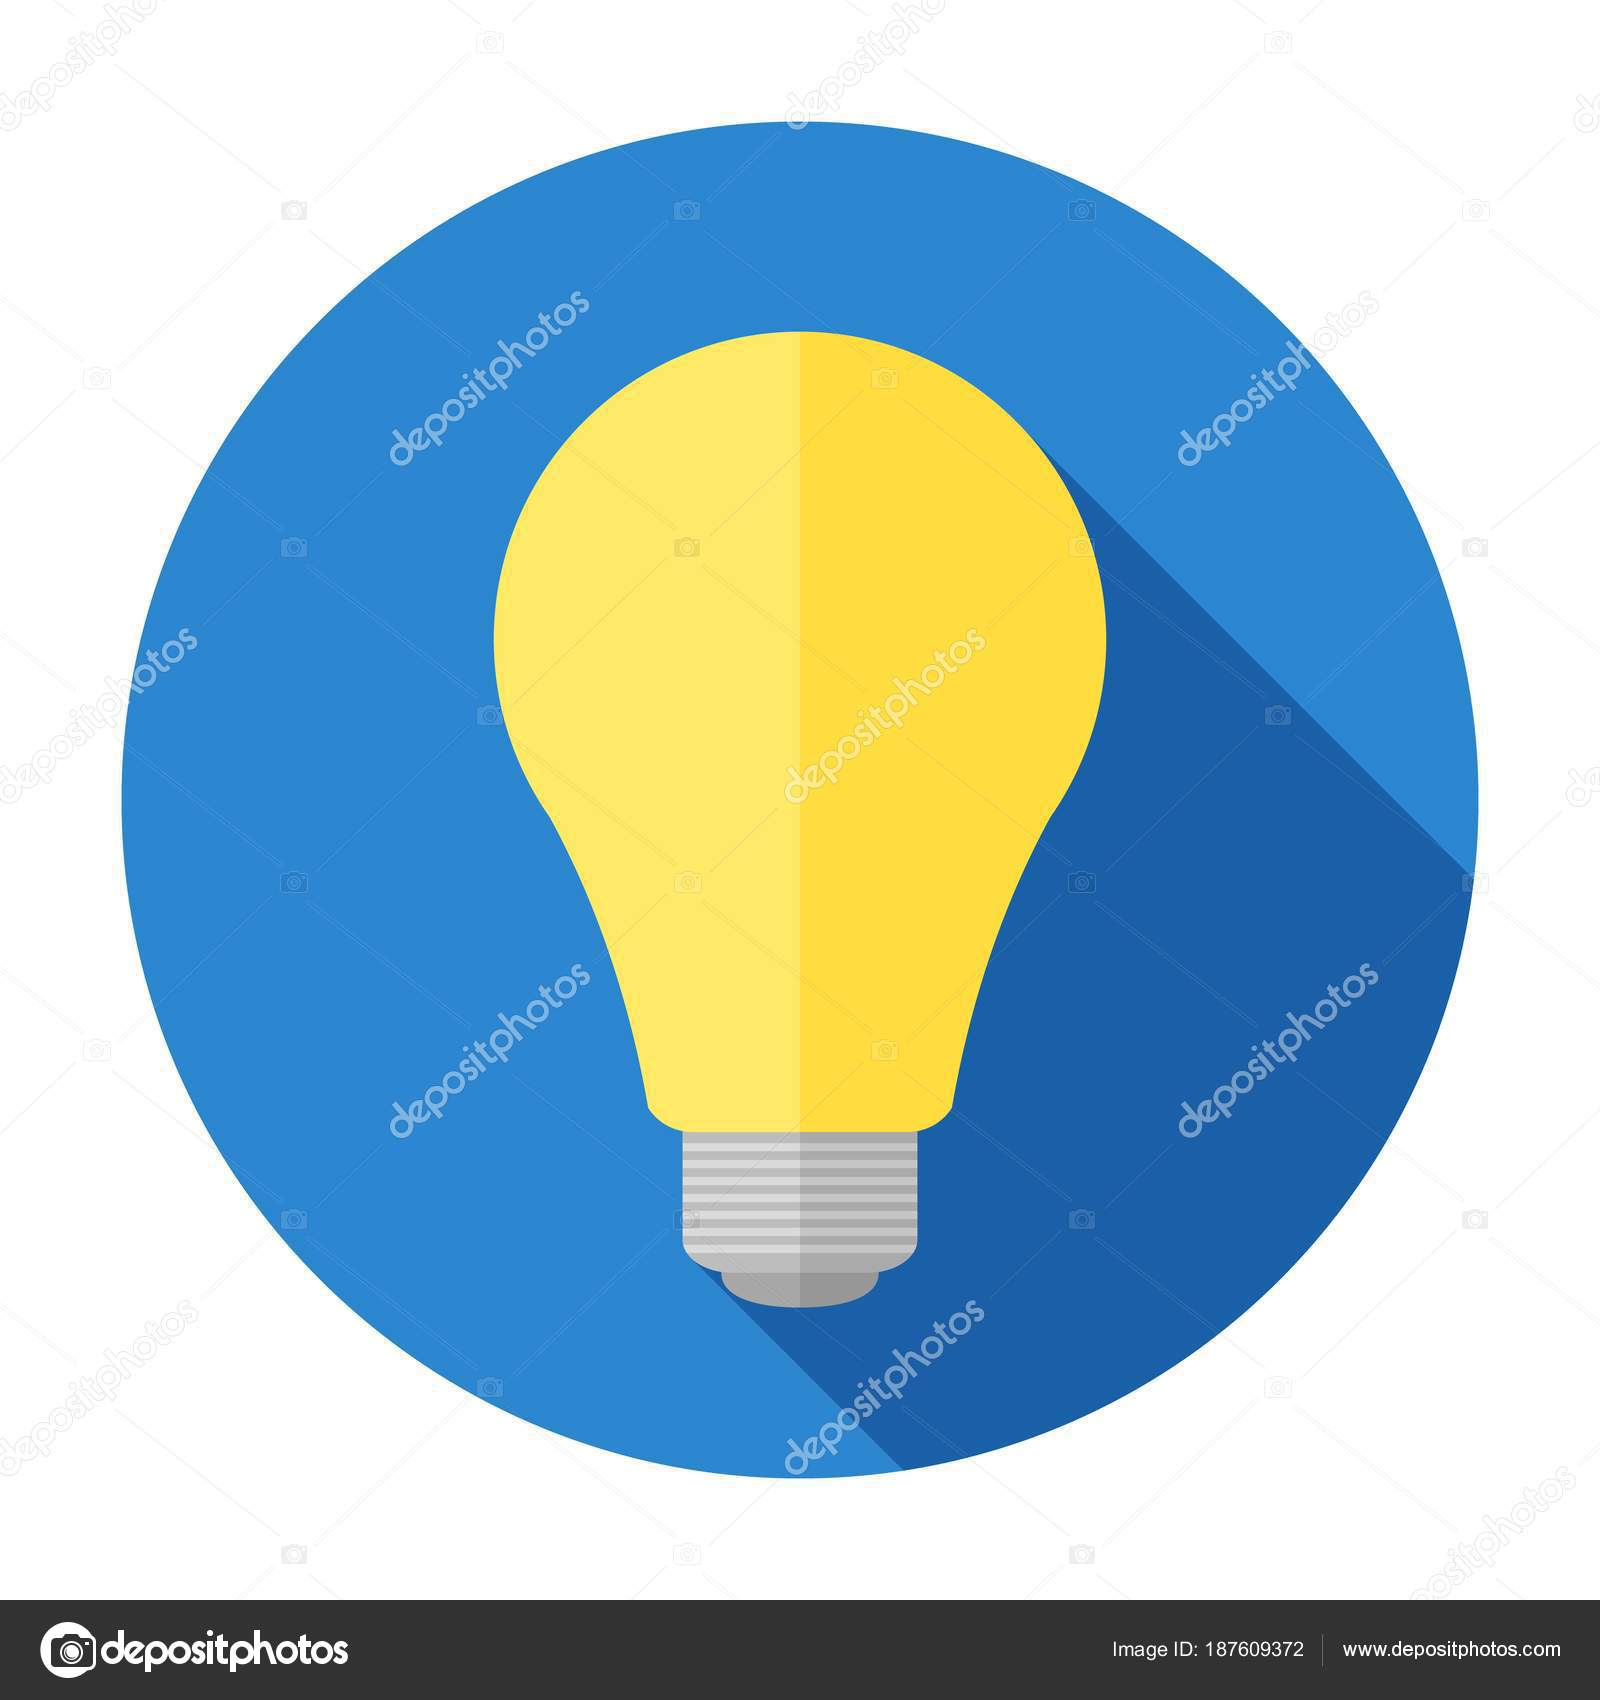 daily skyscraper origins bulbs invented light know use the see we on bulb take a of inventions other was basis to and if pin flat lightbulb quiz our where you